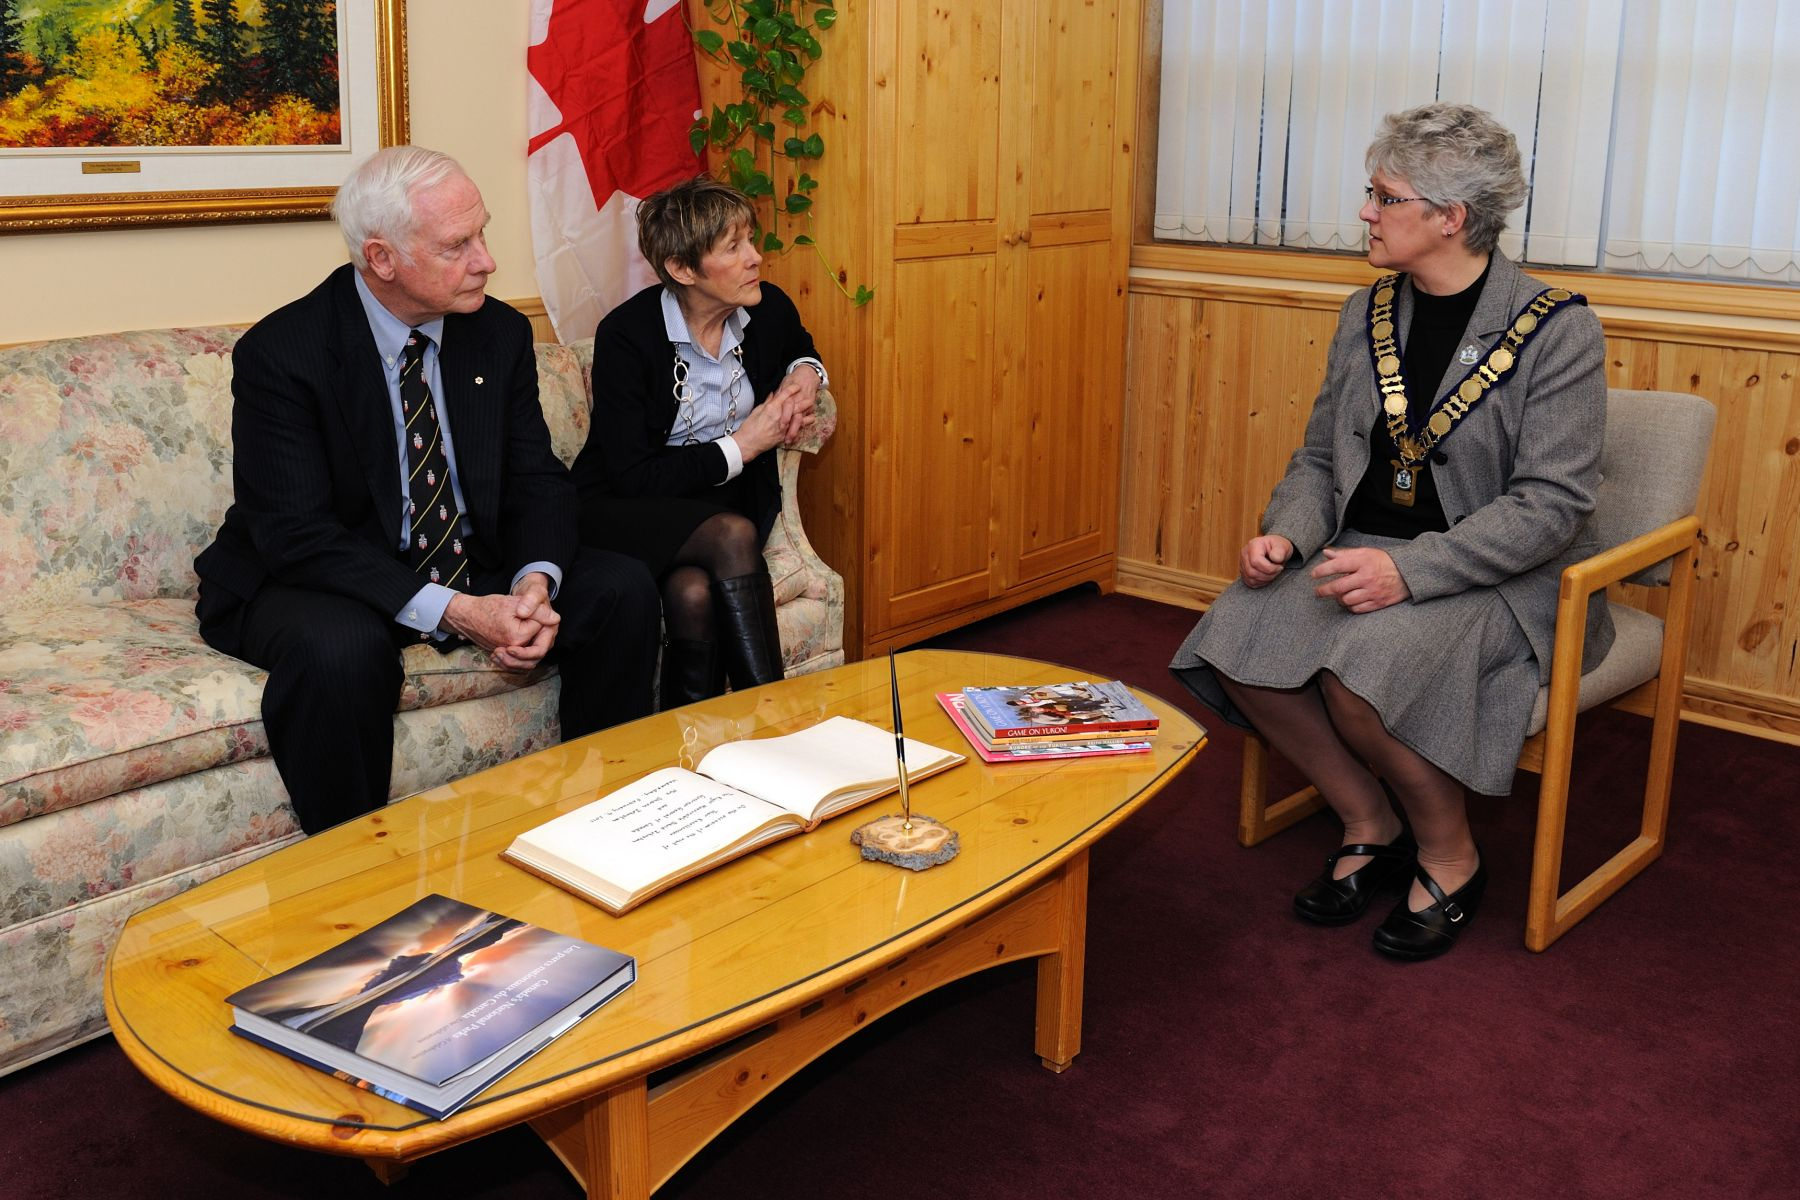 Their Excellencies proceeded to City Hall to meet with Her Worship Bev Buckway, Mayor of Whitehorse.